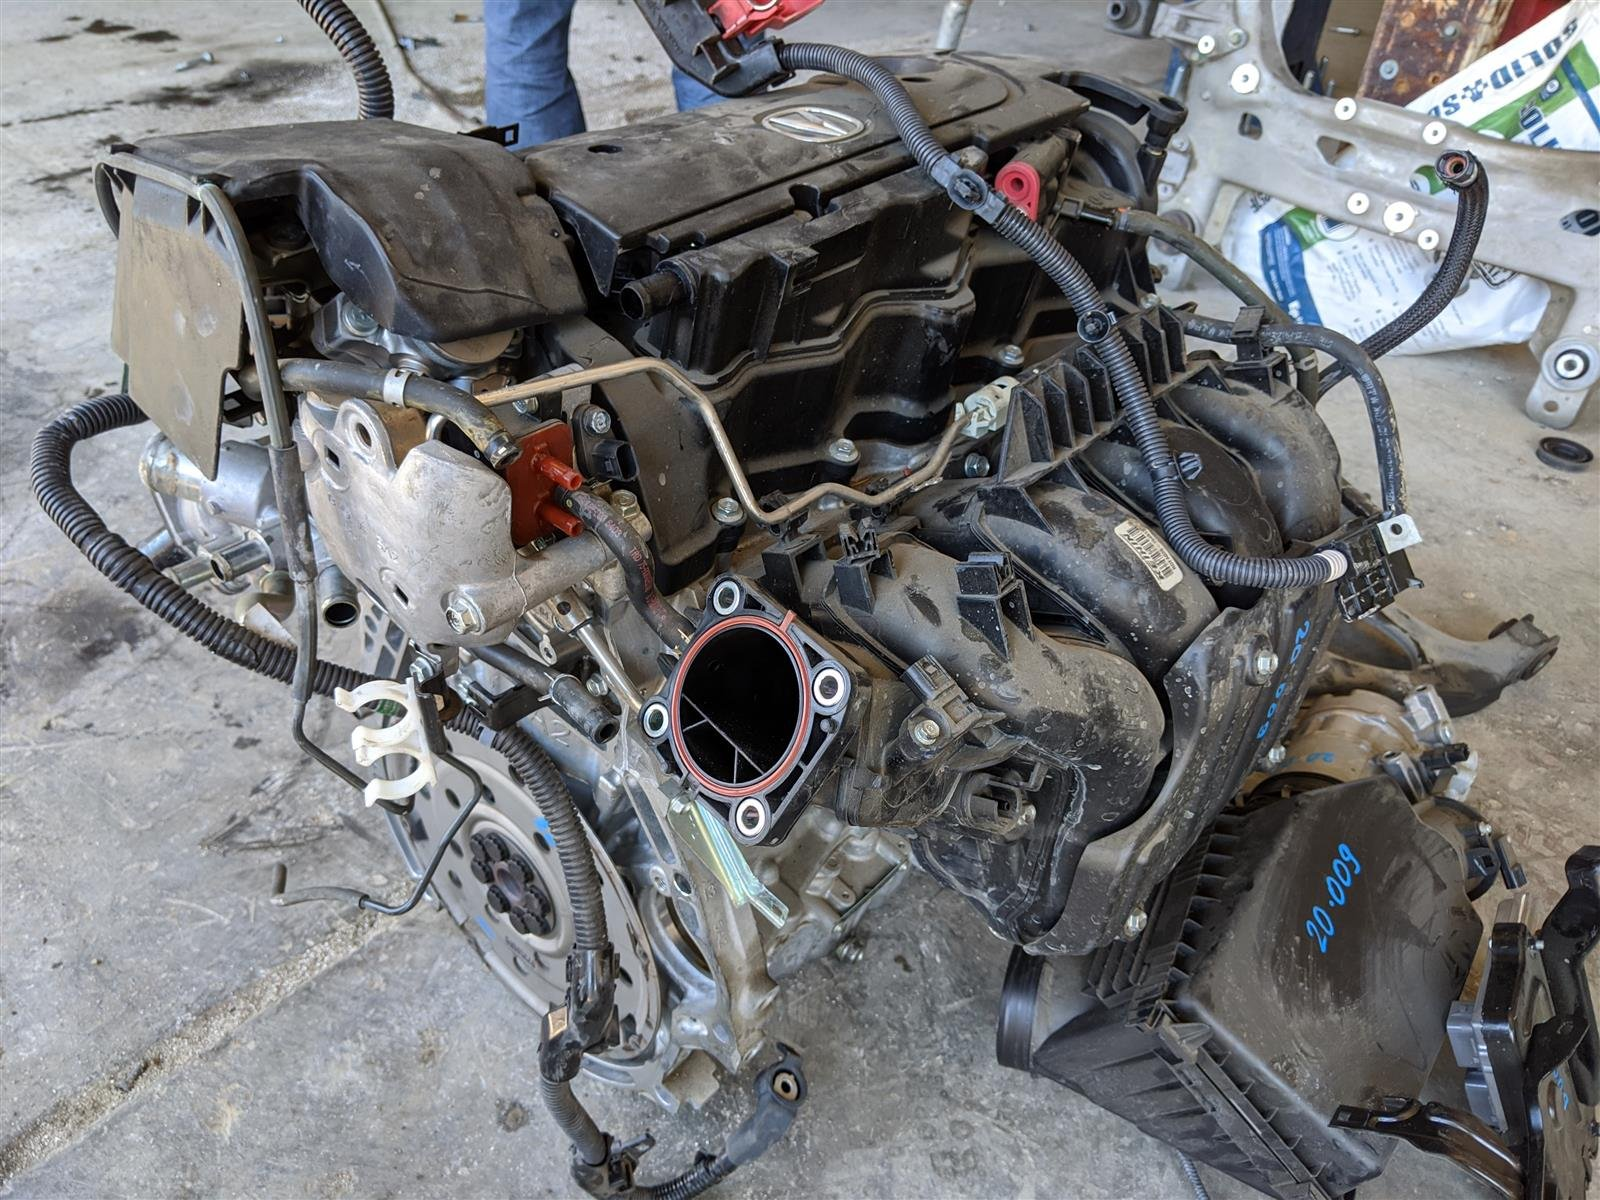 2017 Acura TLX 2.4l Engine Longblock 42,000 Miles Replacement